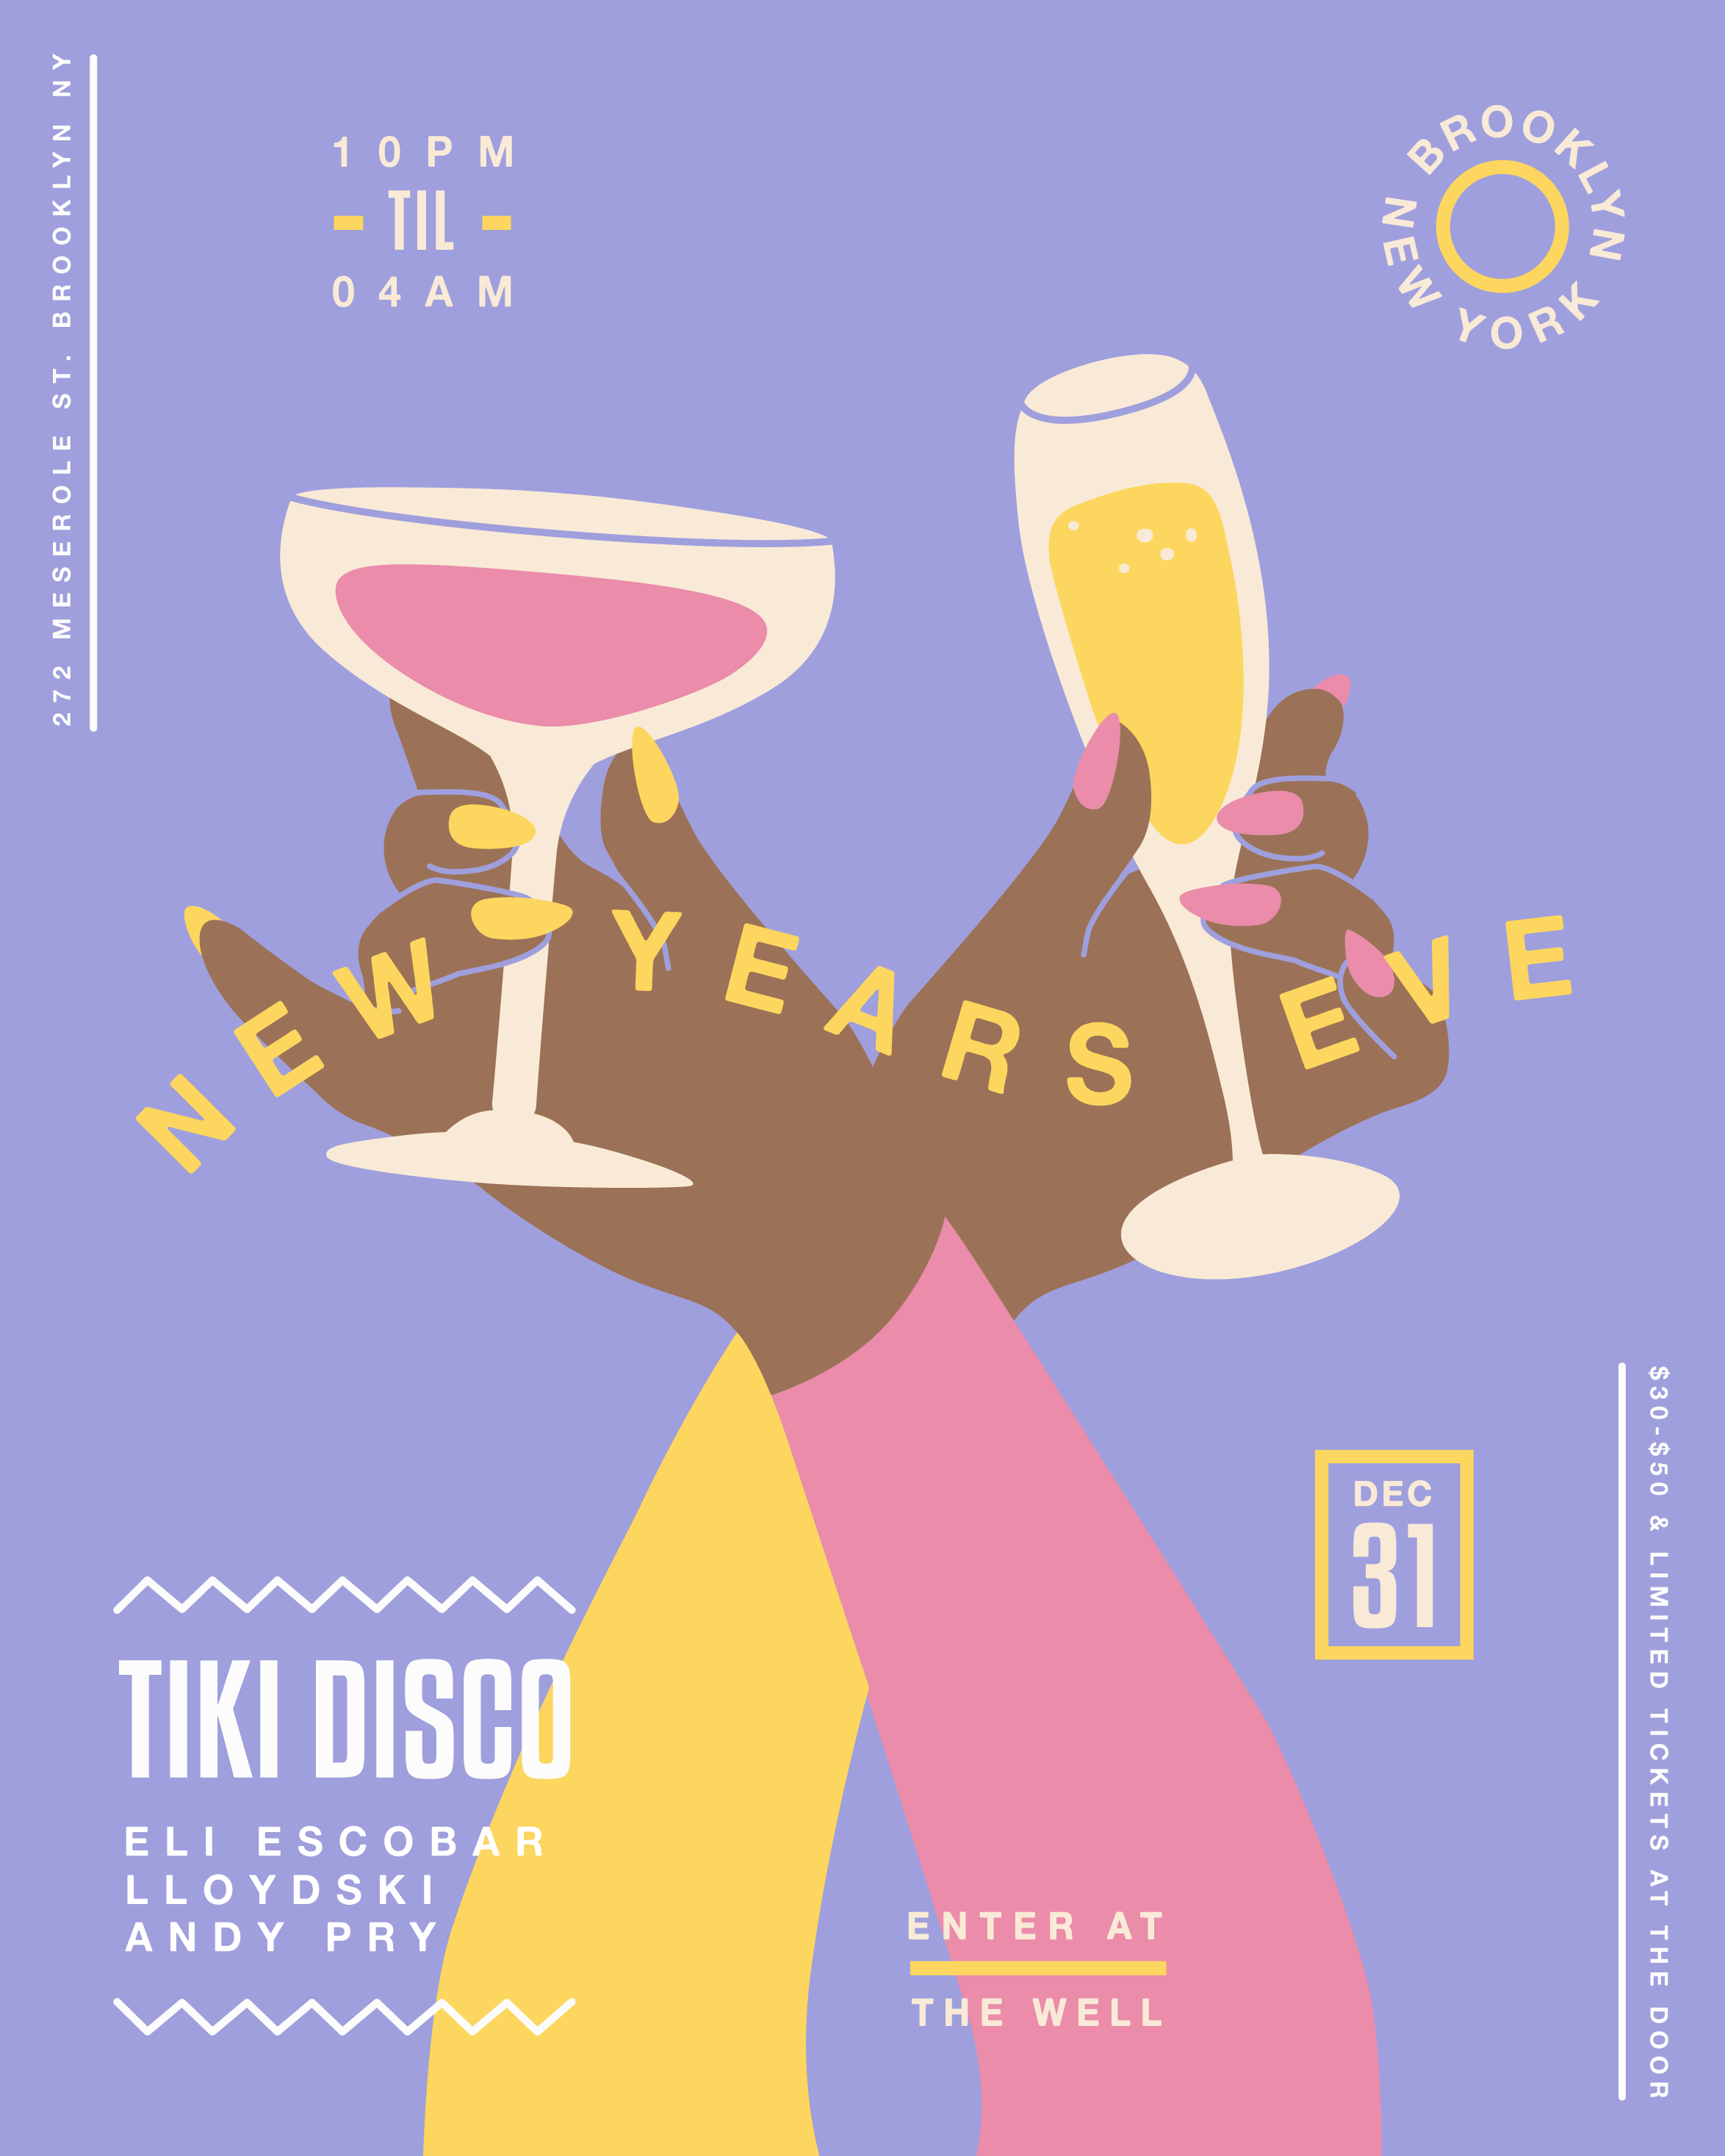 2016-12-01_tikidisco_poster_01 copy.png